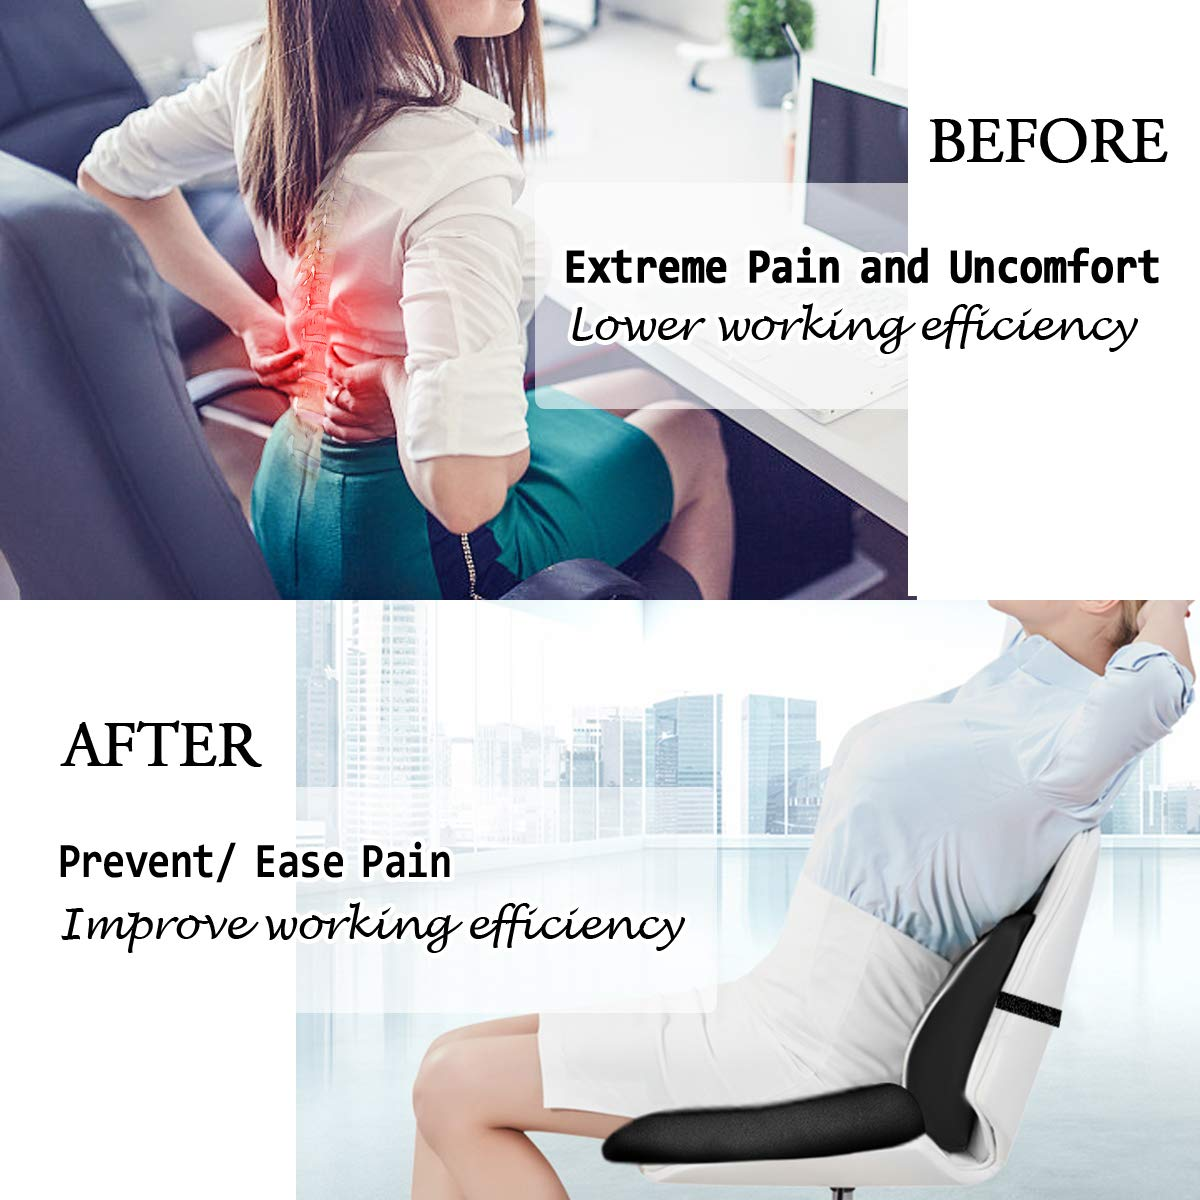 Coccyx Cushion Pad with Lumbar Support Pillow Relieves Tailbone Pain Sciatica /& Back Pain Essort Memory Foam Seat Cushion Gray Posture Corrector for Office Chair Car Seat Wheelchair